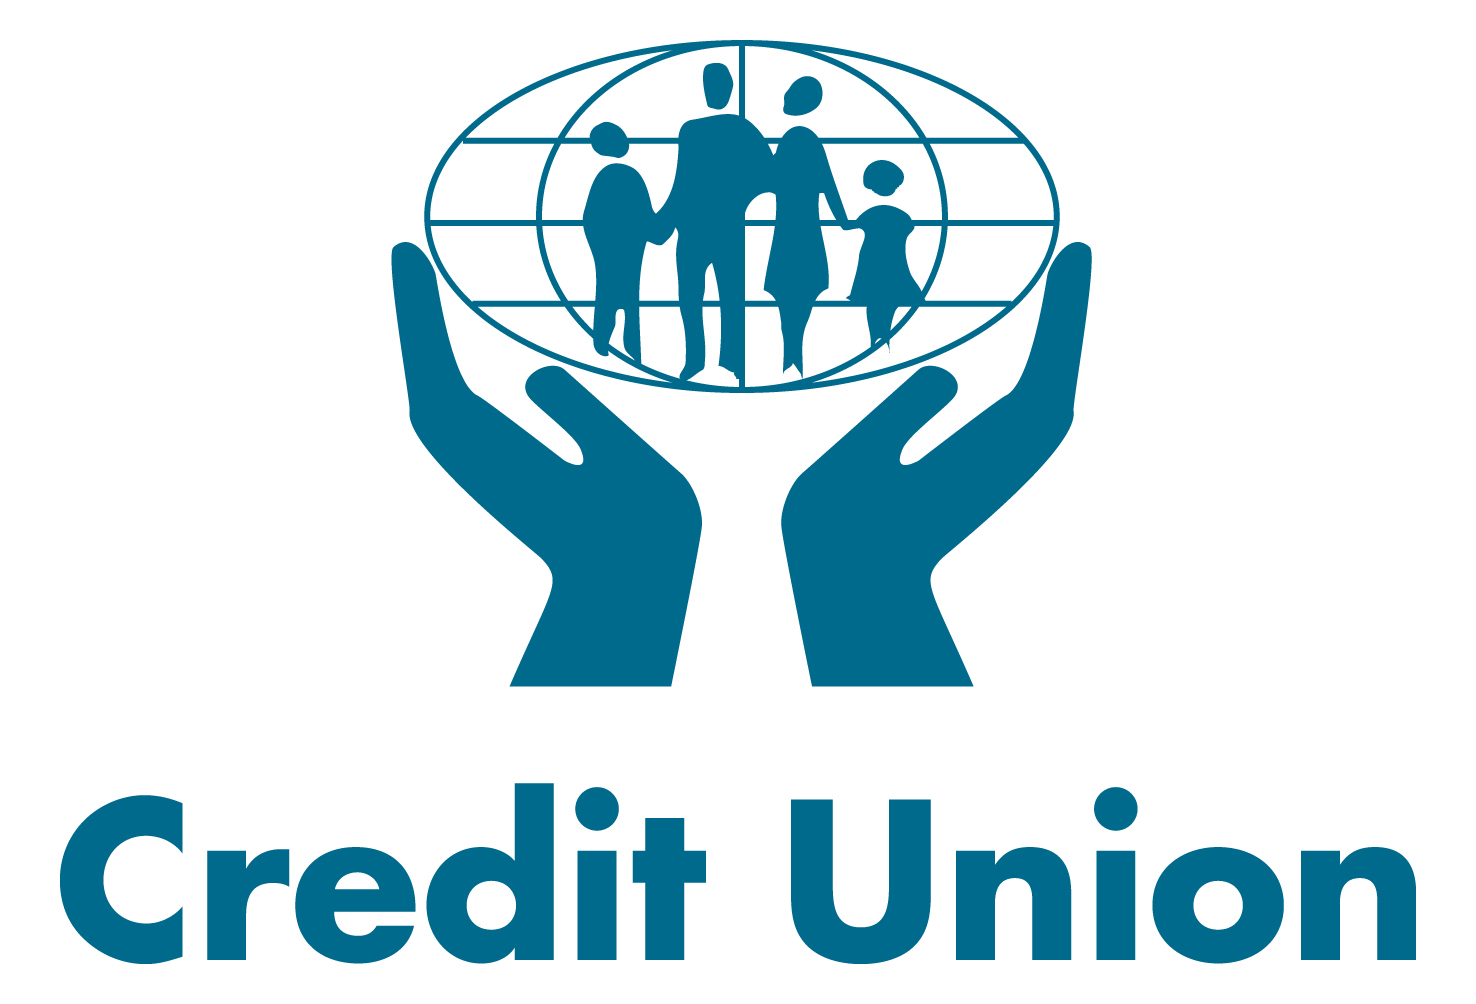 Remainder of Credit Union fund should go to Communities